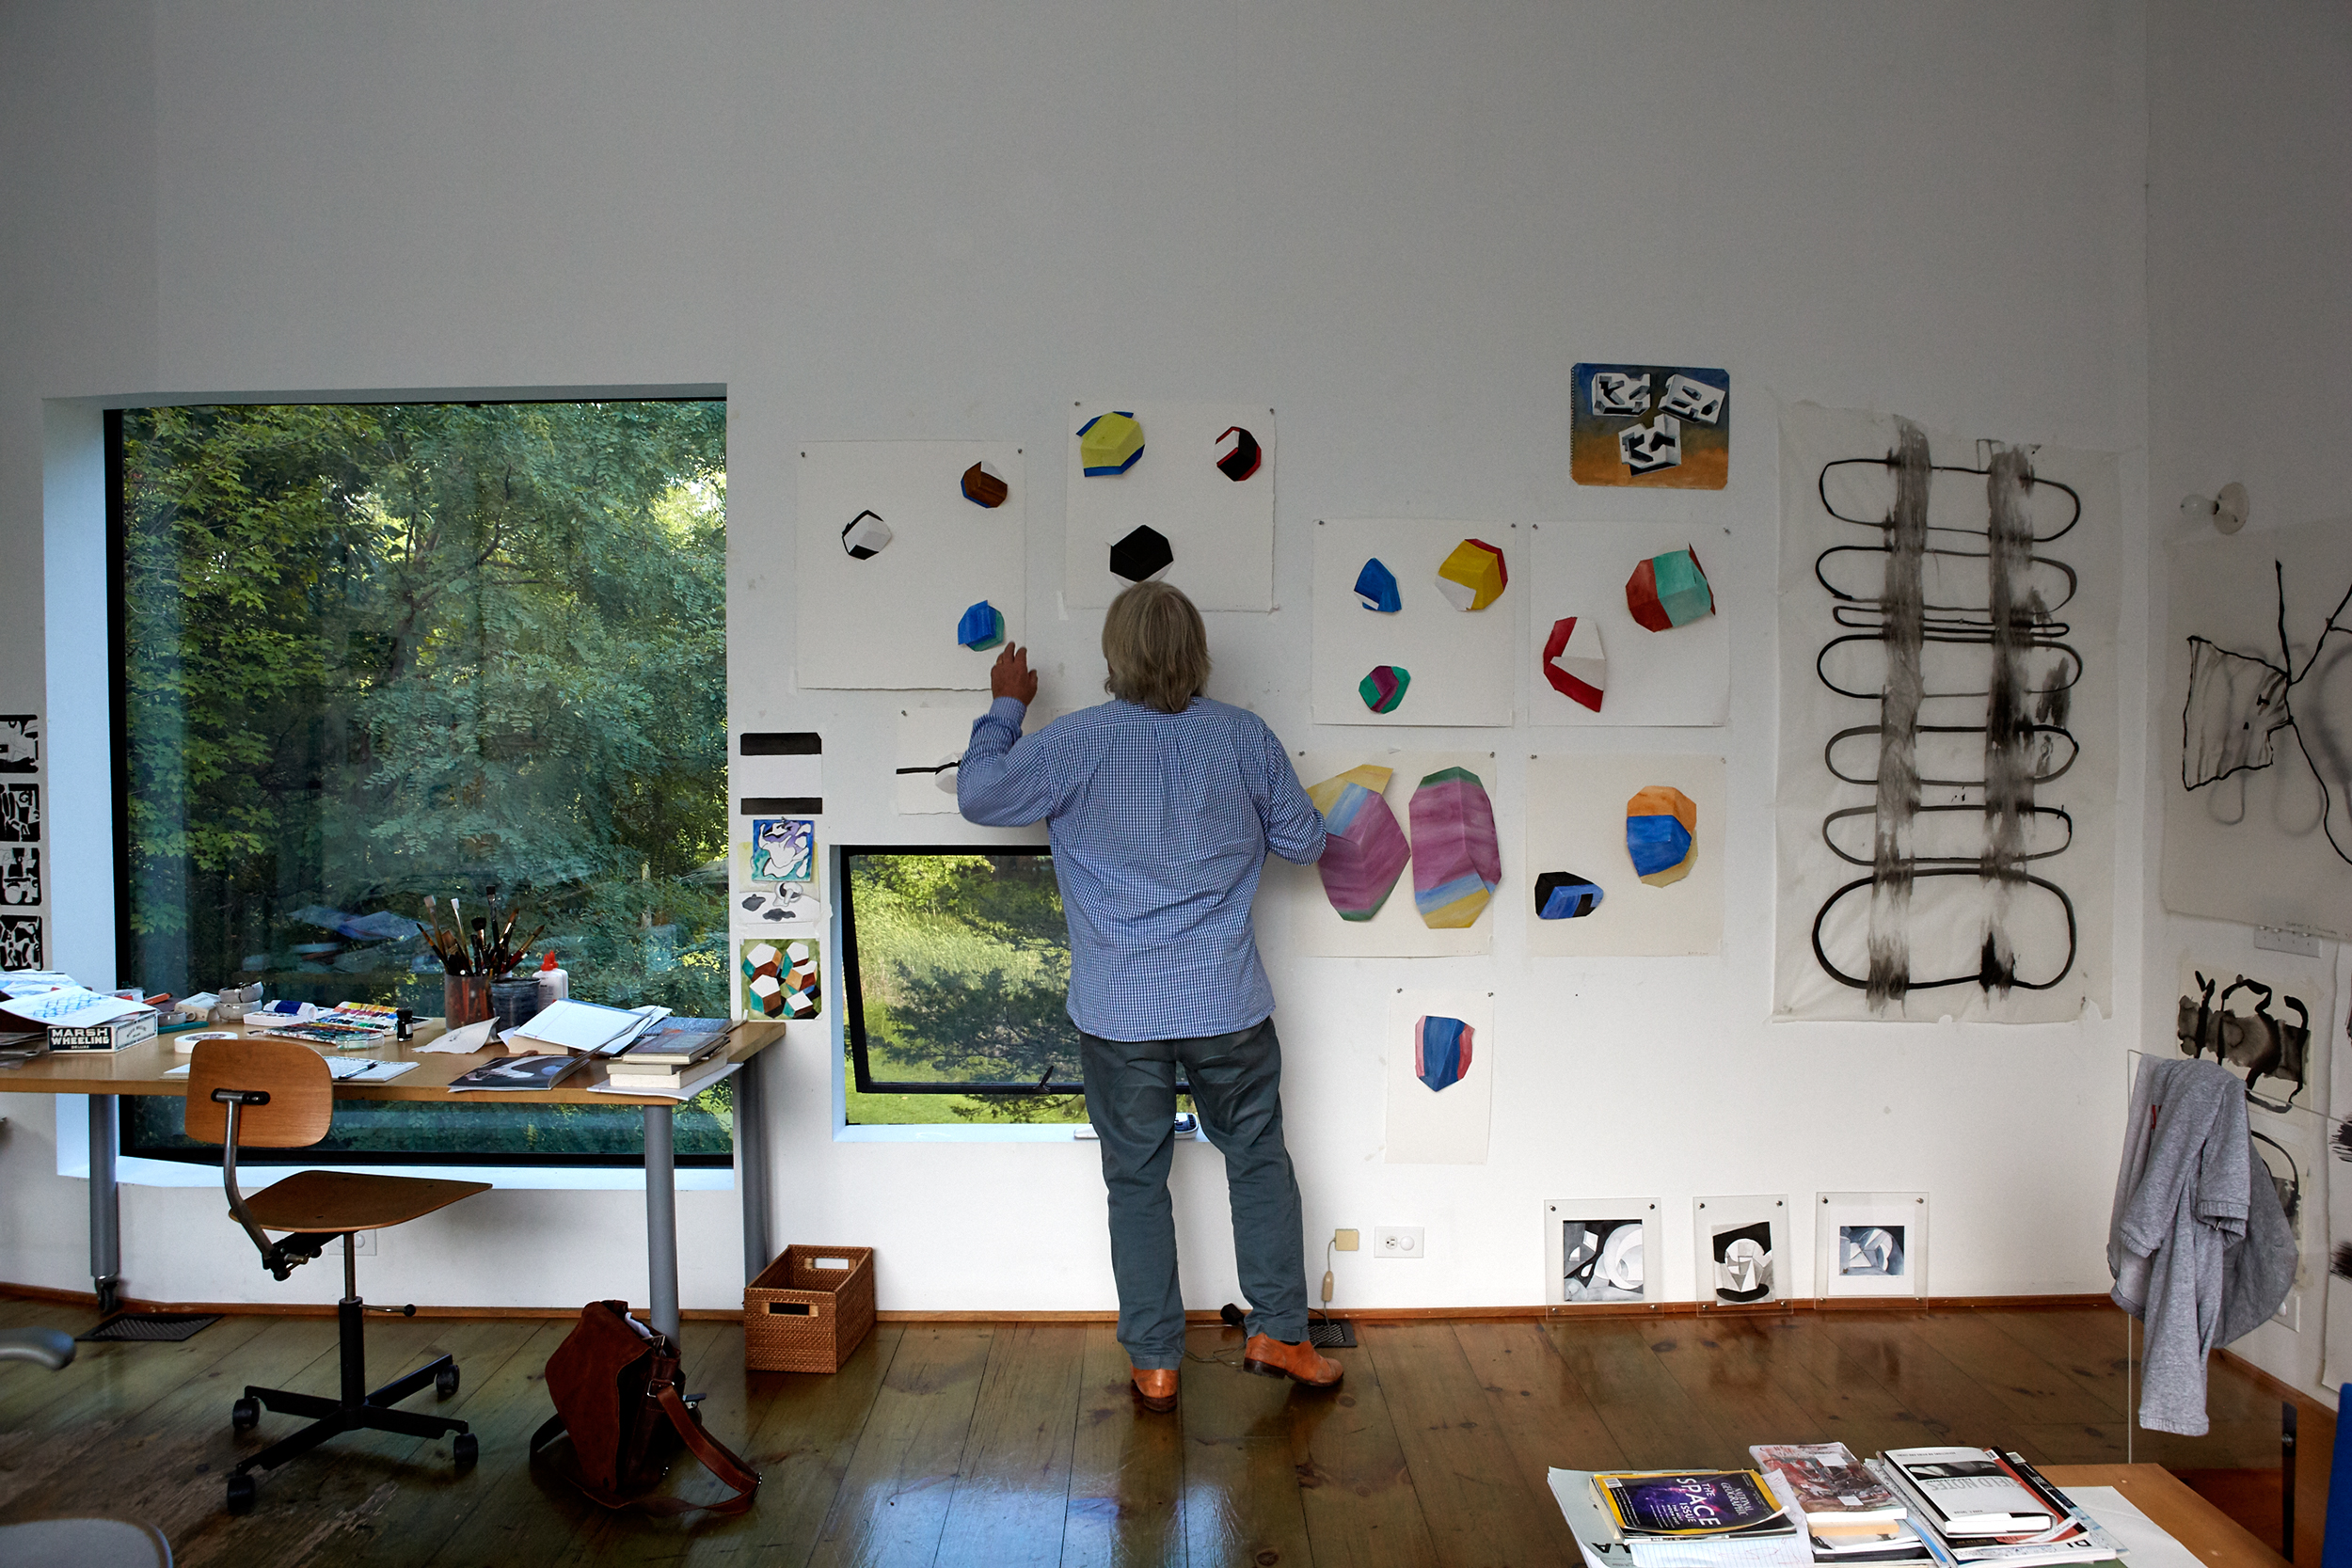 Holl at work in his studio.